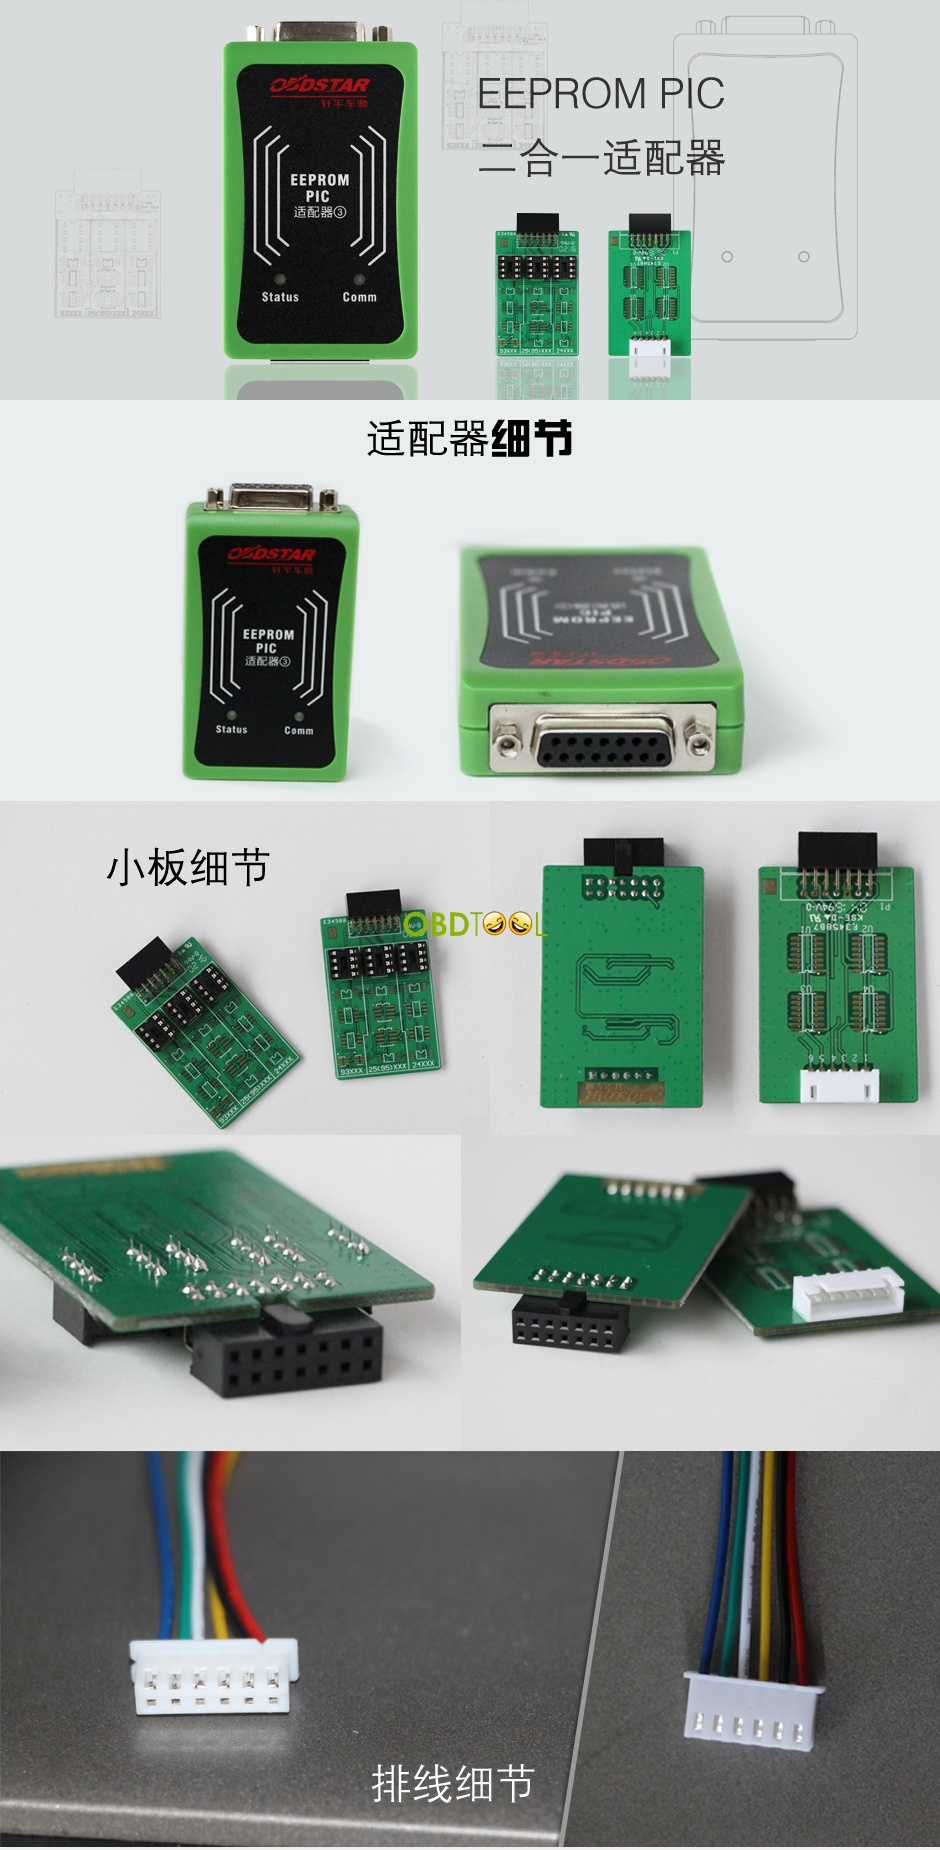 obdstar eeprom pic adapter-01